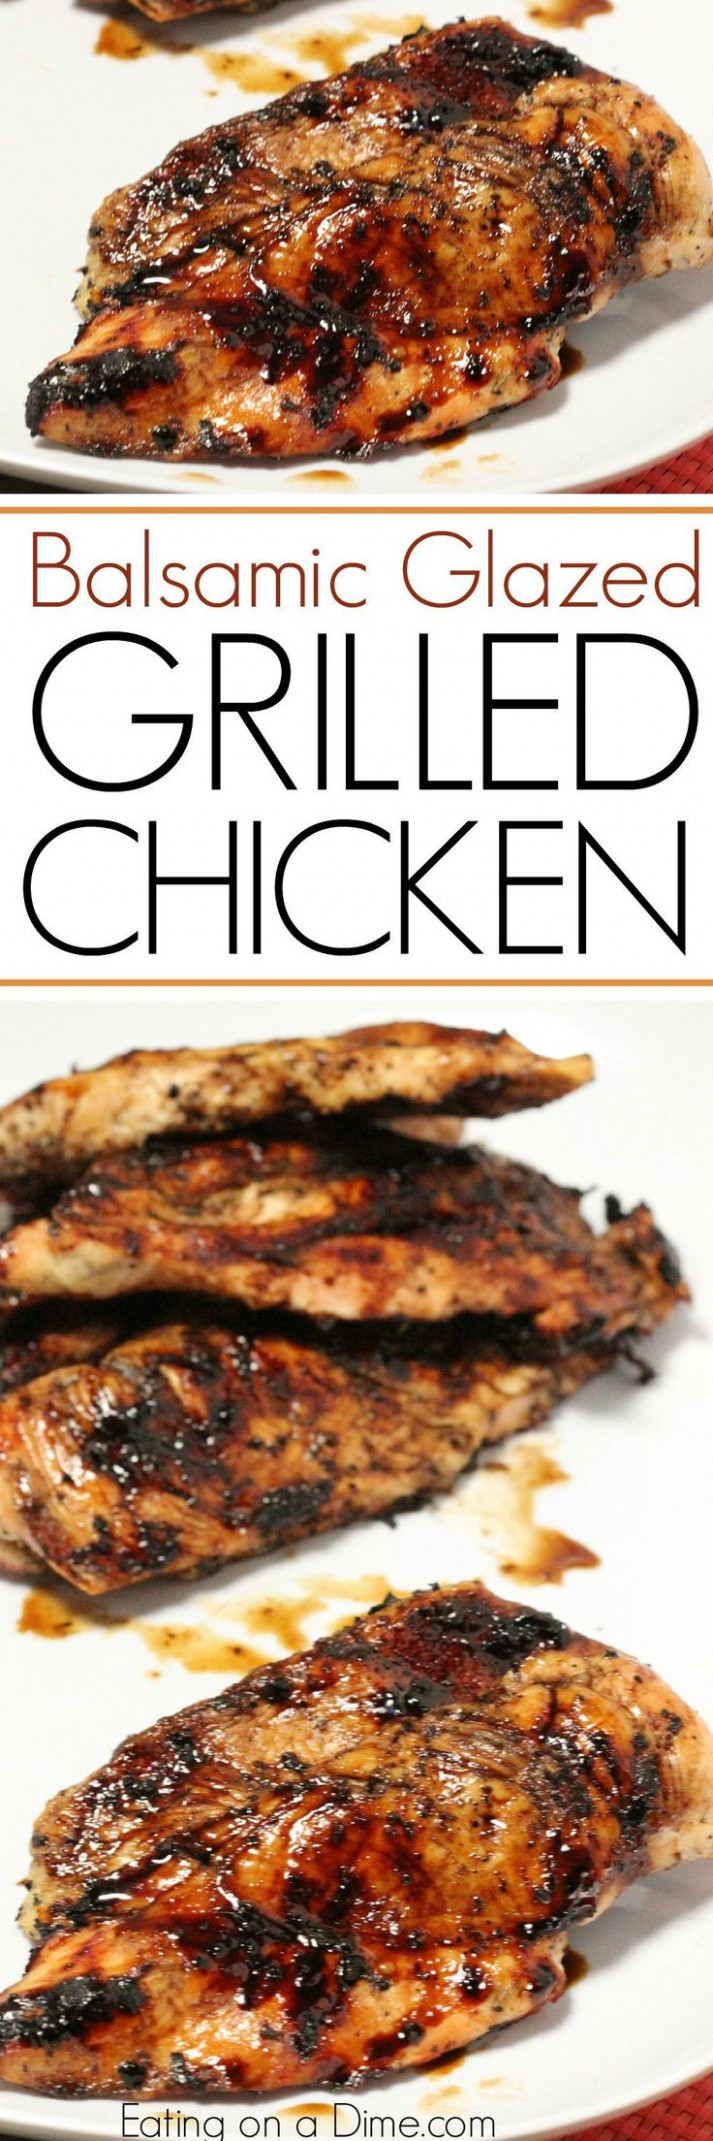 100+ Grilled chicken recipes on Pinterest | Marinated ...